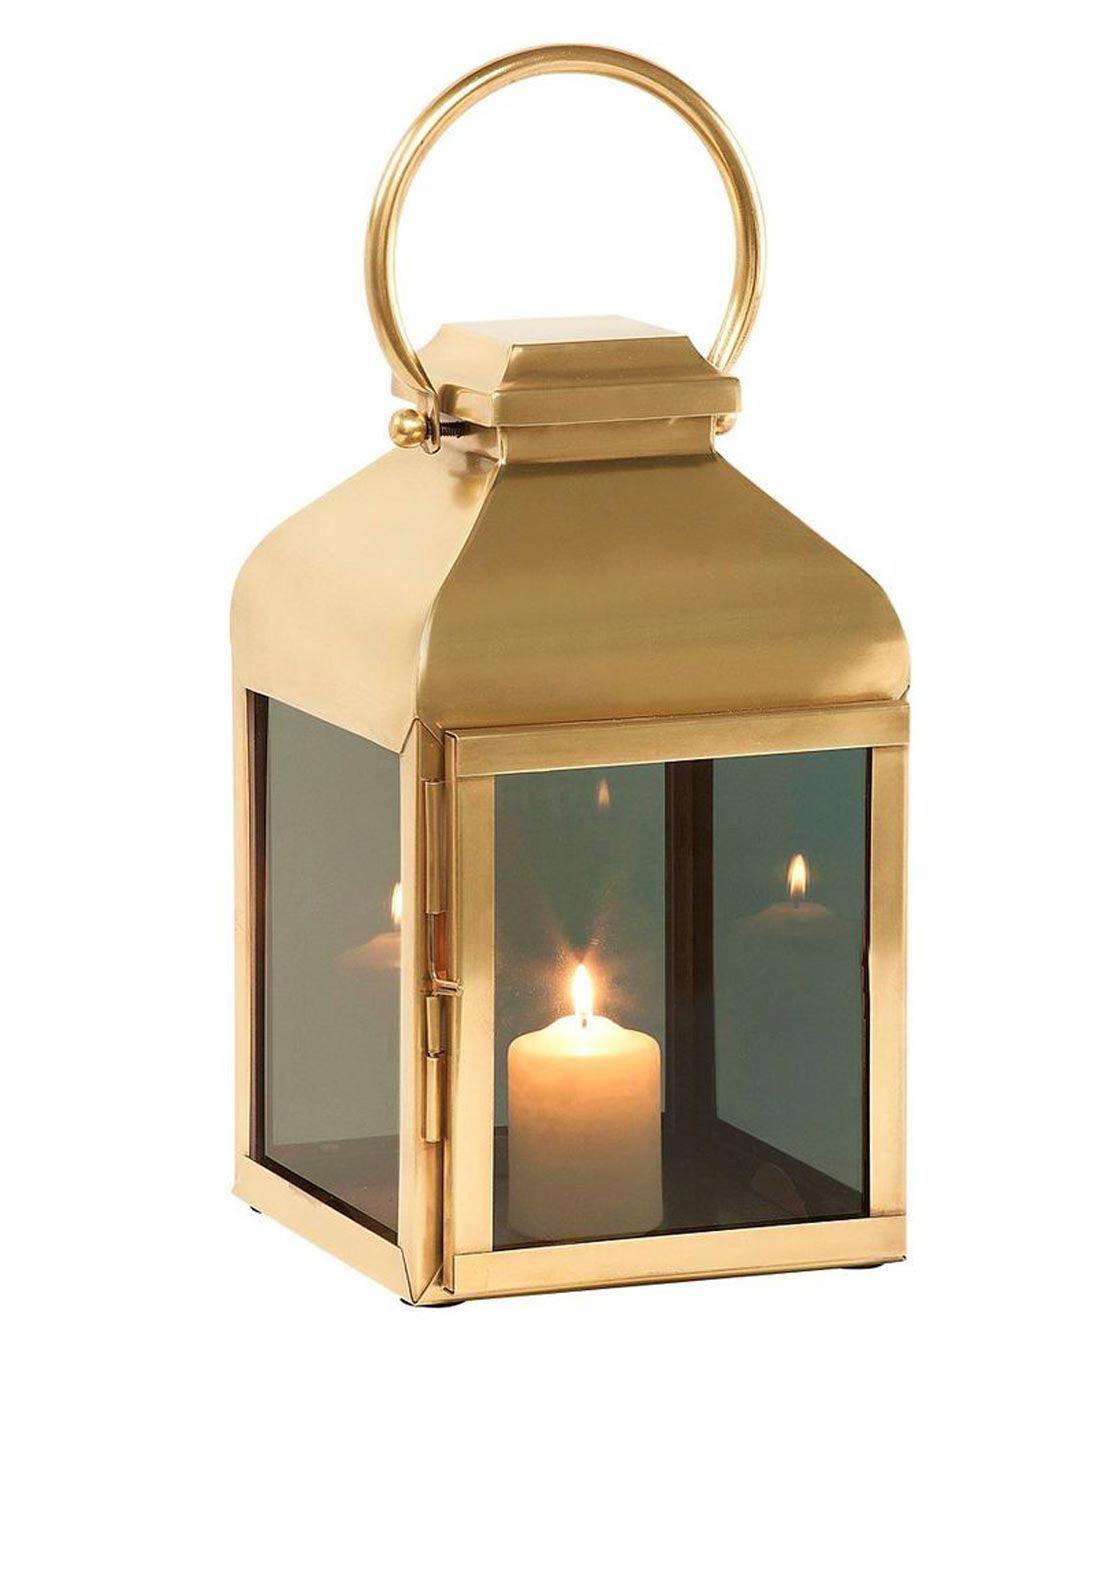 Mindy Brownes Small Smoked Glass Brass Lantern, 18 inches